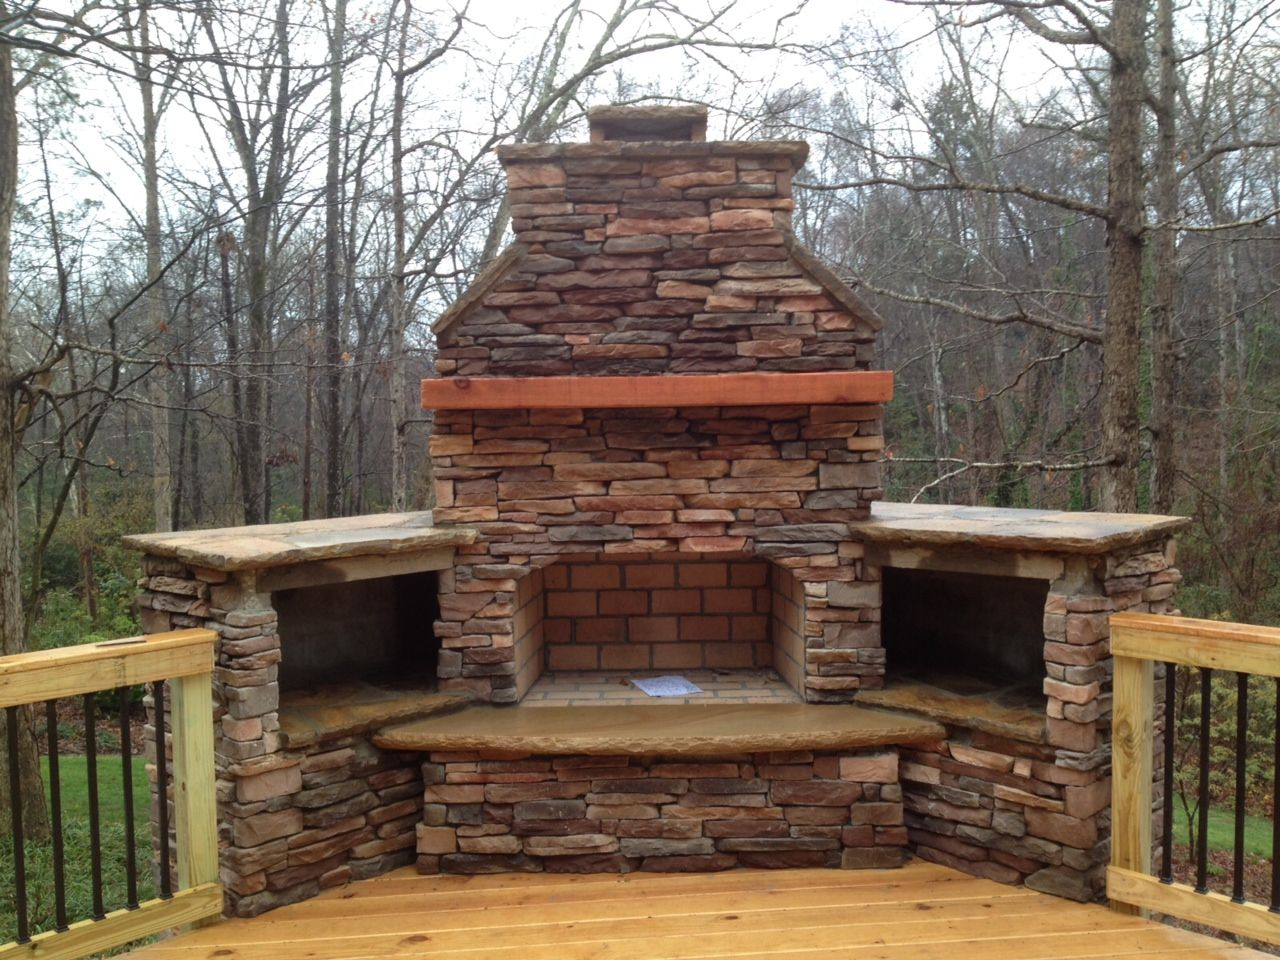 Outdoor Fireplace On Wood Deck With Deckorator Balusters Archadeck